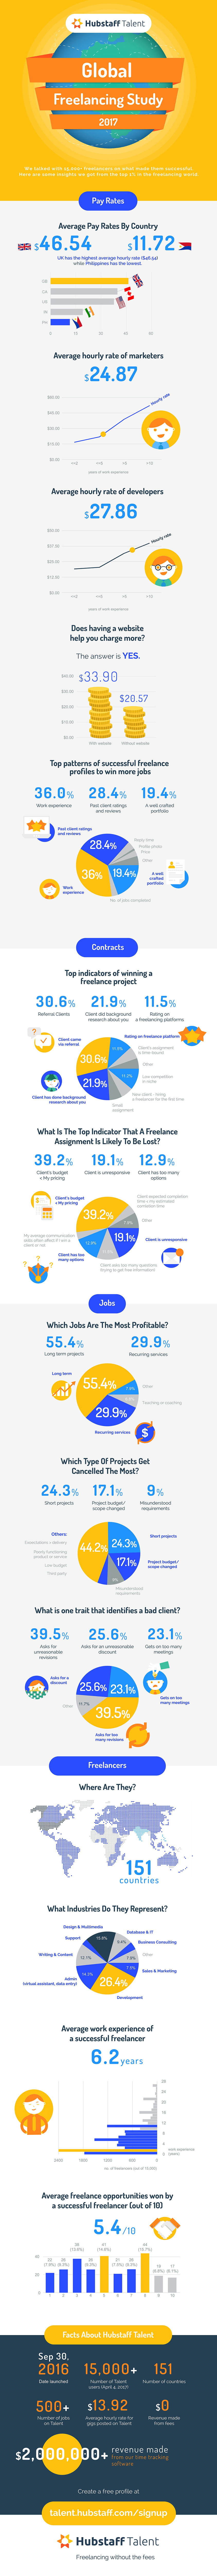 Global Freelancing Market in 2017: Insights and Trends - Infographic